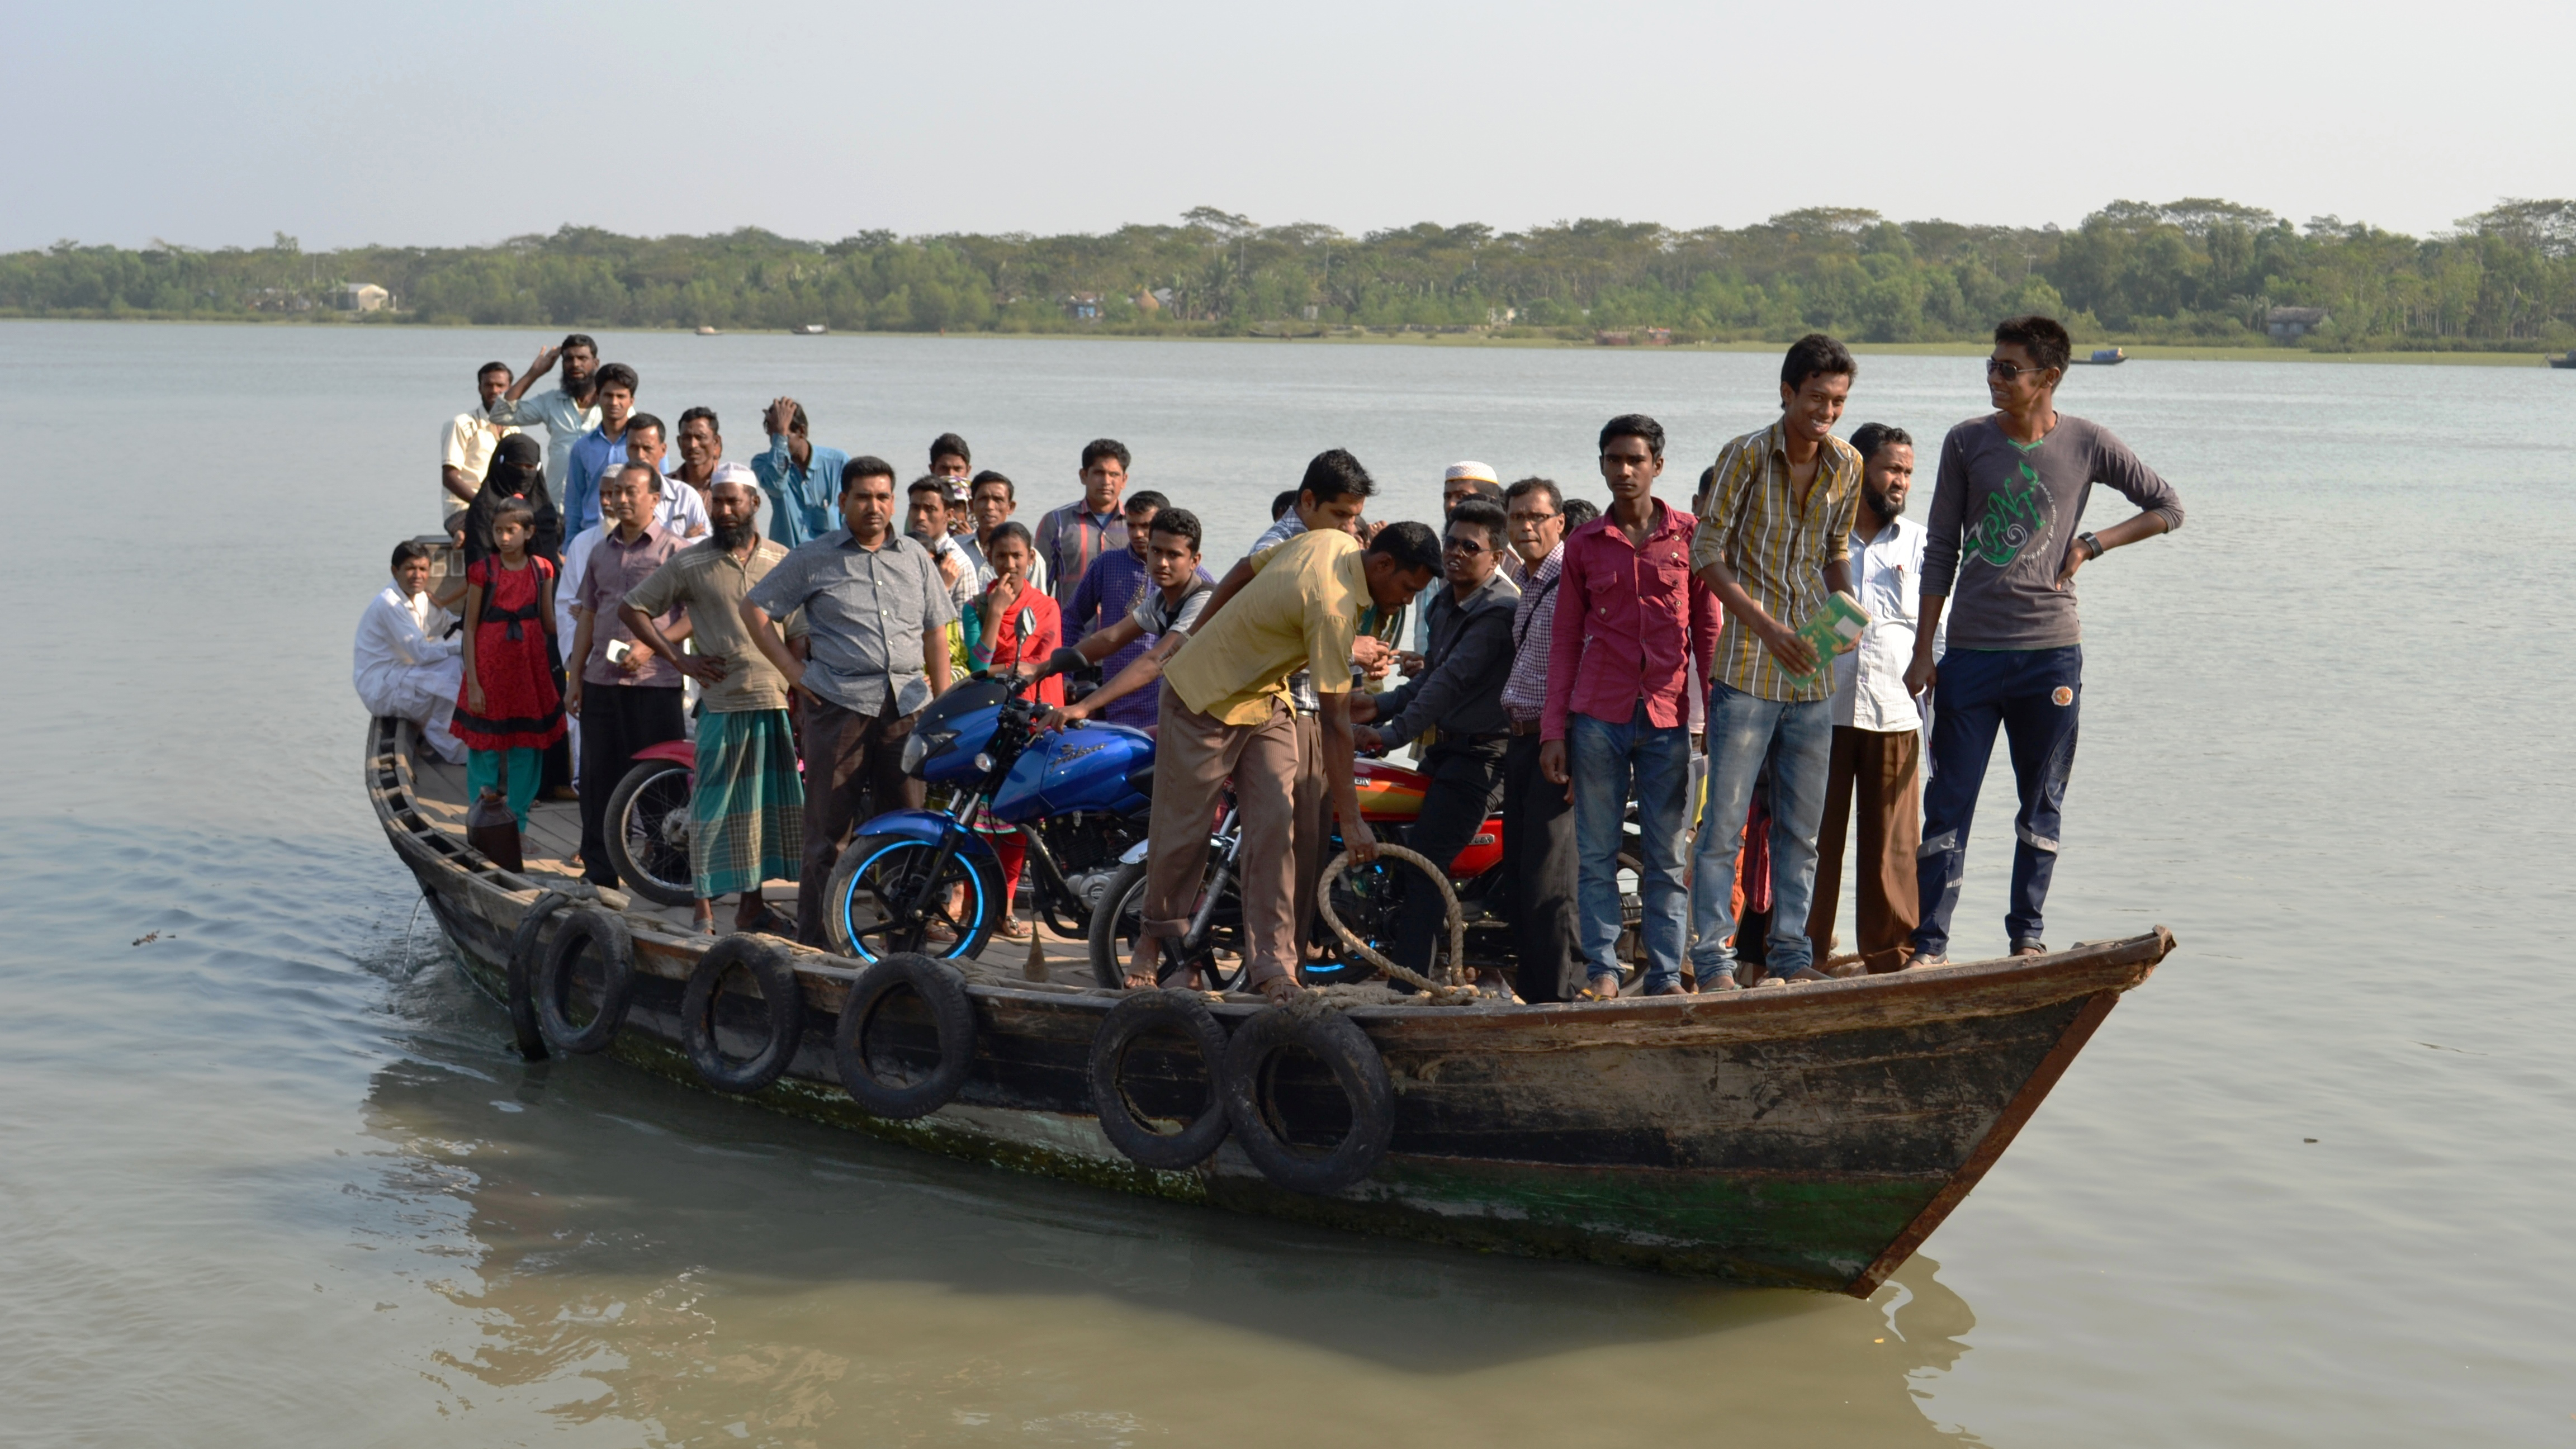 Lots of people on a small boat with their motorbikes waiting to disembark